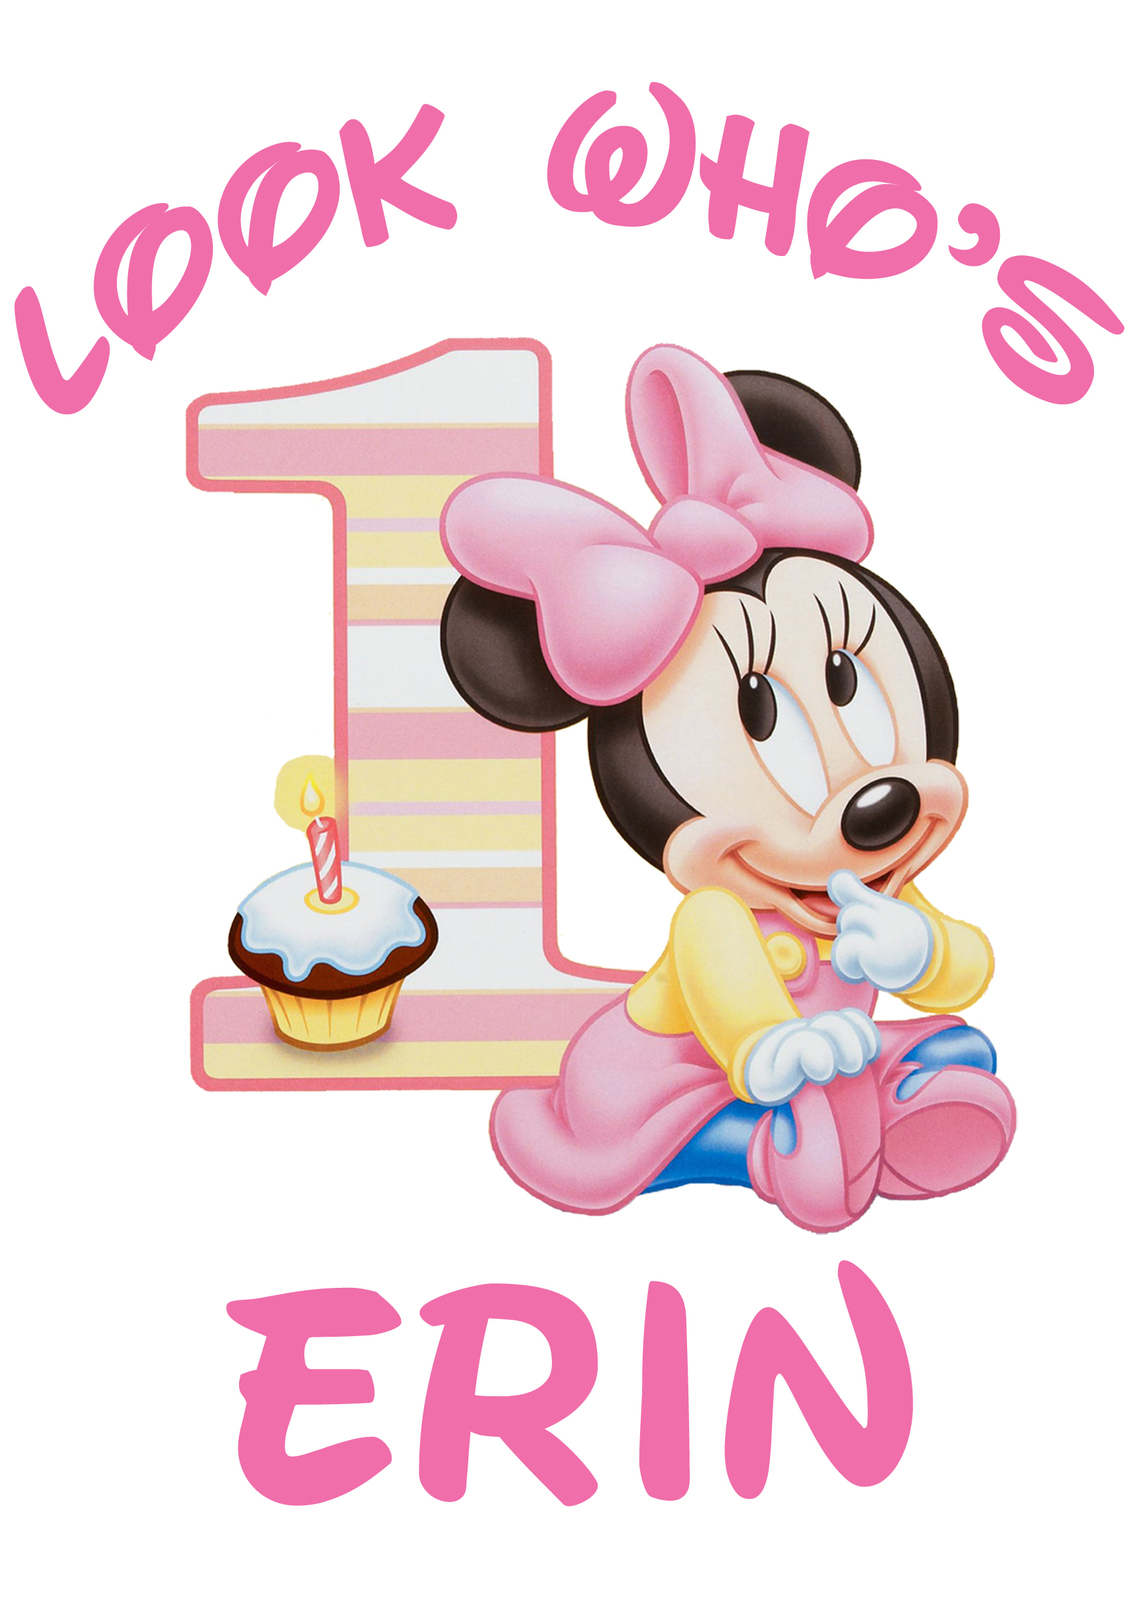 Minnie mouse 1st birthday clipart vector royalty free Baby minnie mouse 1st birthday clipart - ClipartFest vector royalty free